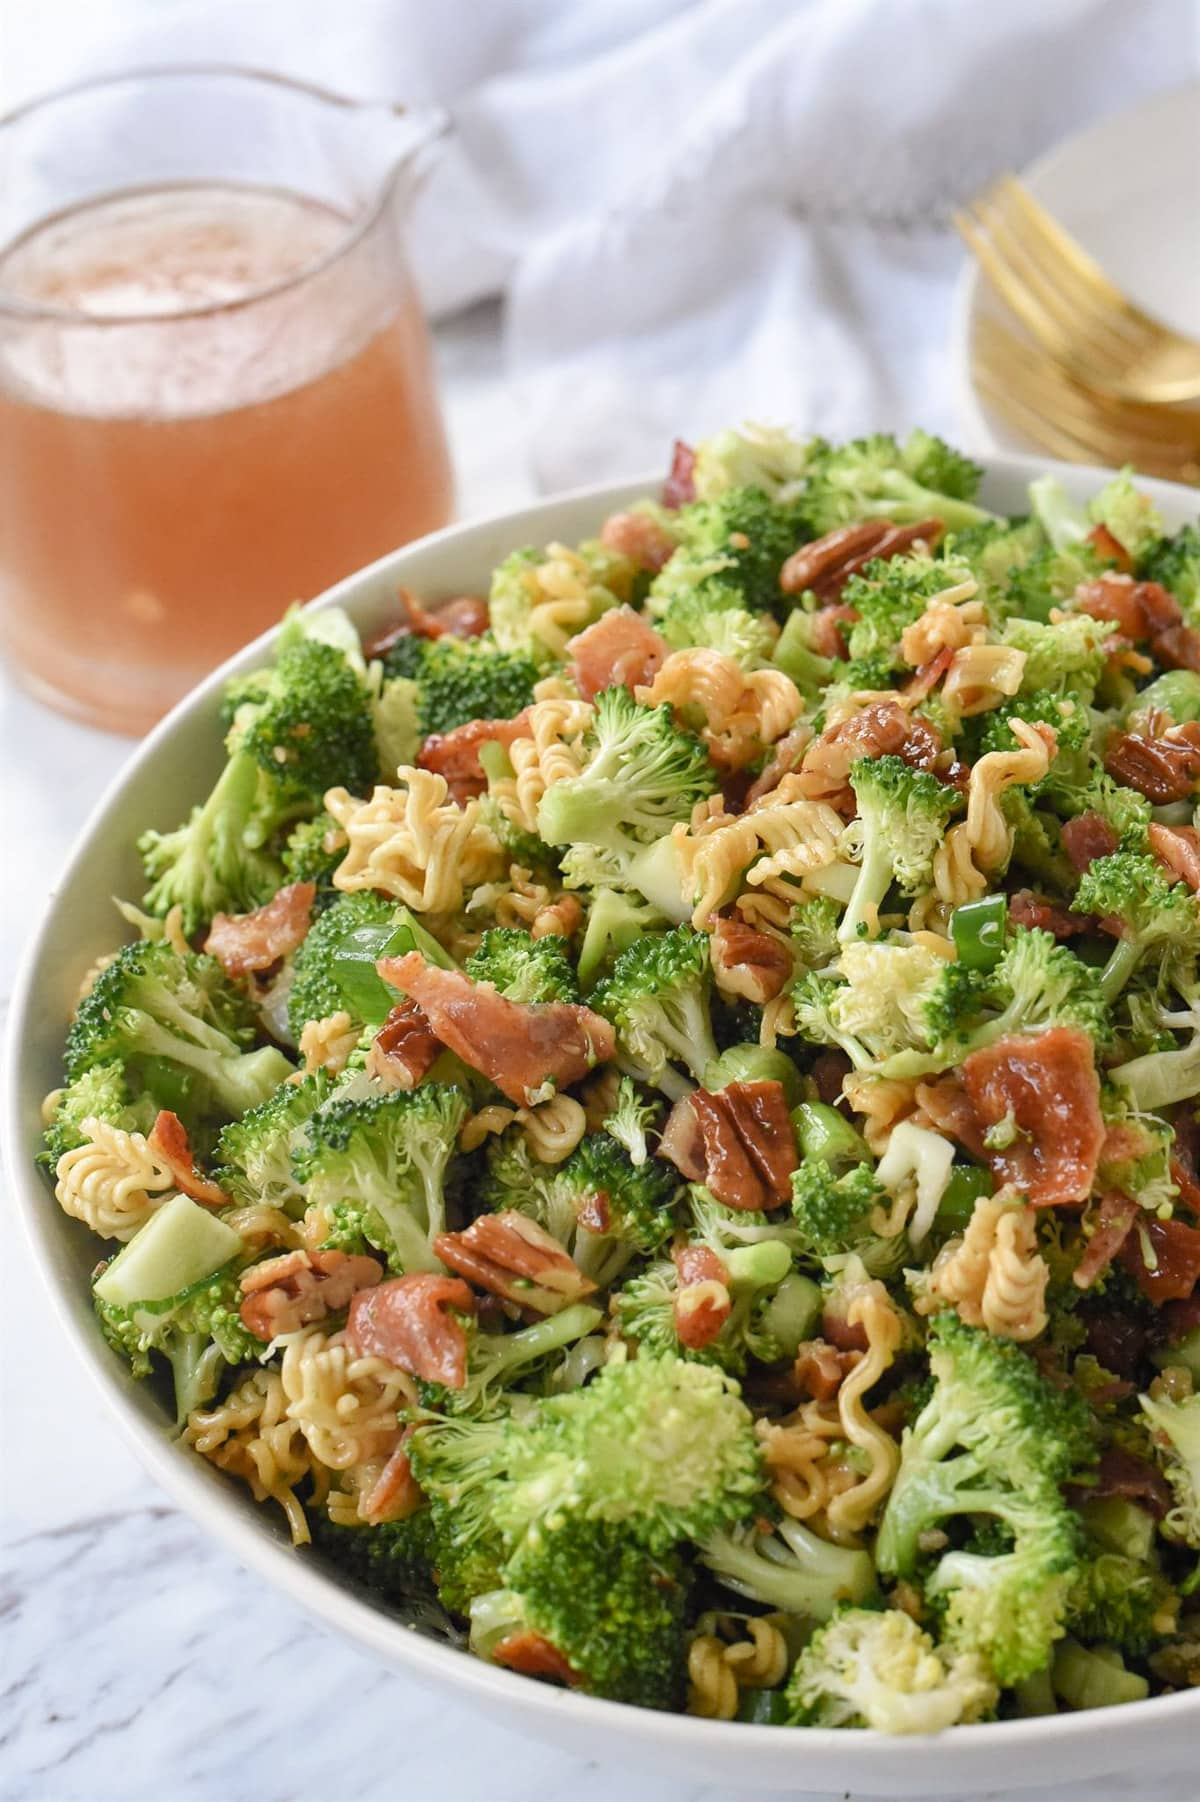 broccoli crunch salad in a bowl